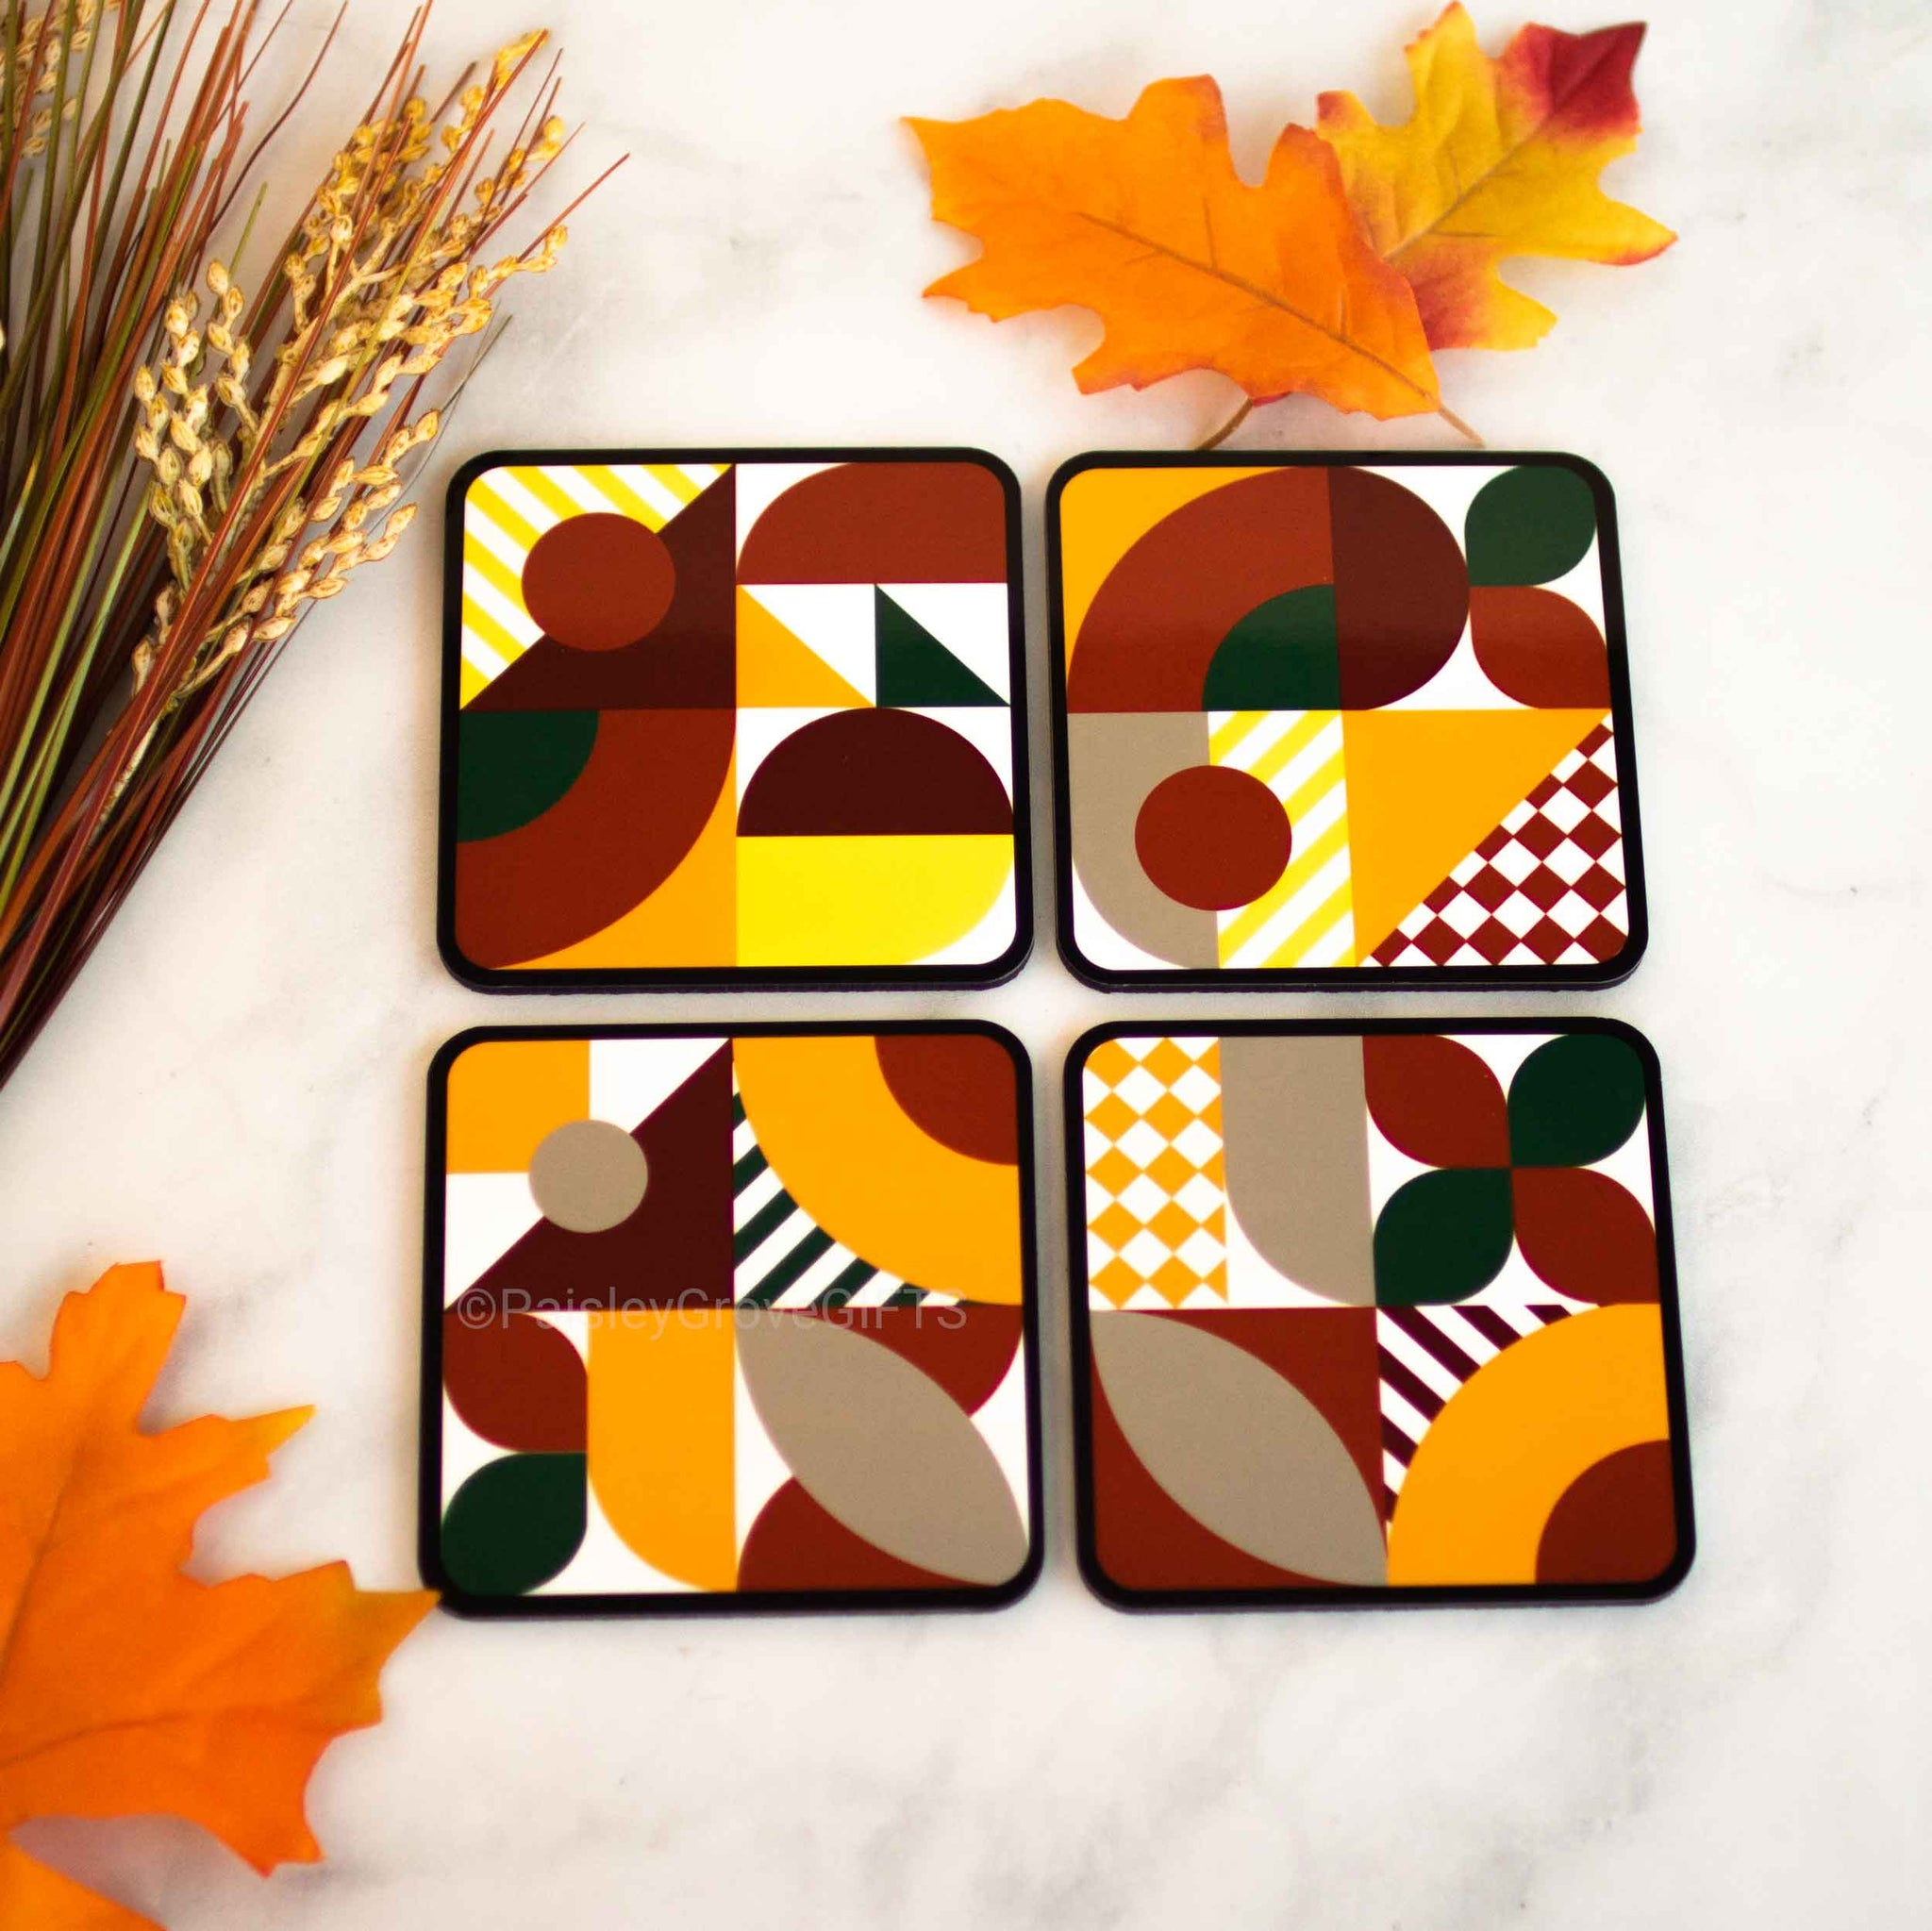 CopyrightPaisleyGroveGIFTS S701abcd Fall Home Decor Autumn Decoration Drink Coasters Maximalist Modern Home Abstract Design